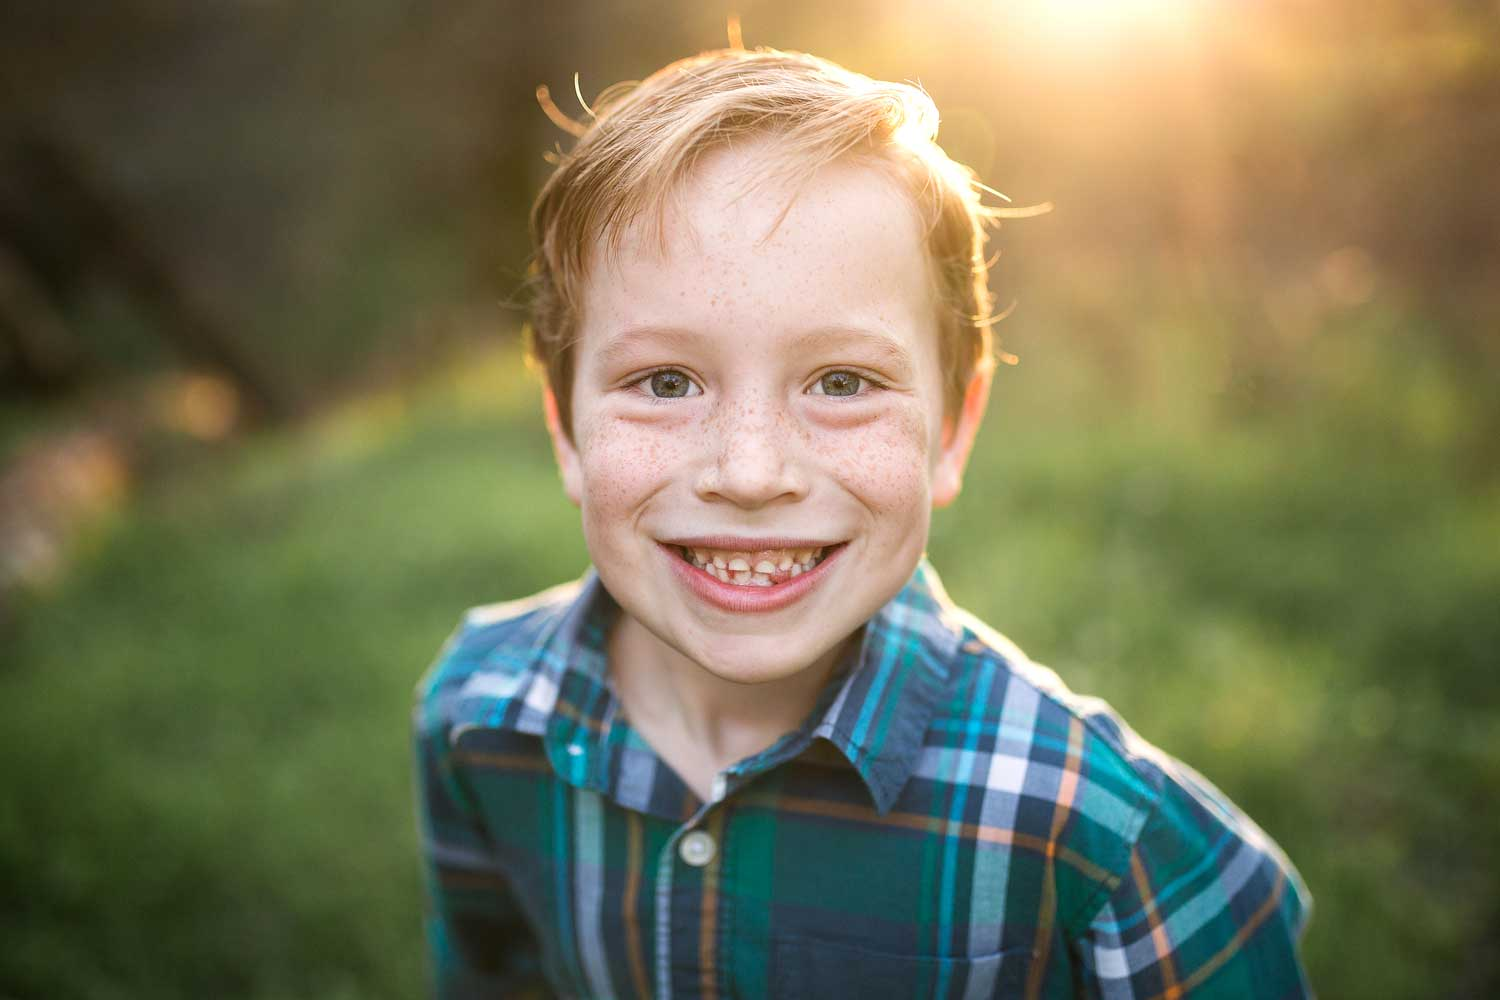 A boy smiles for the camera in some beautiful light in Roseville, California.